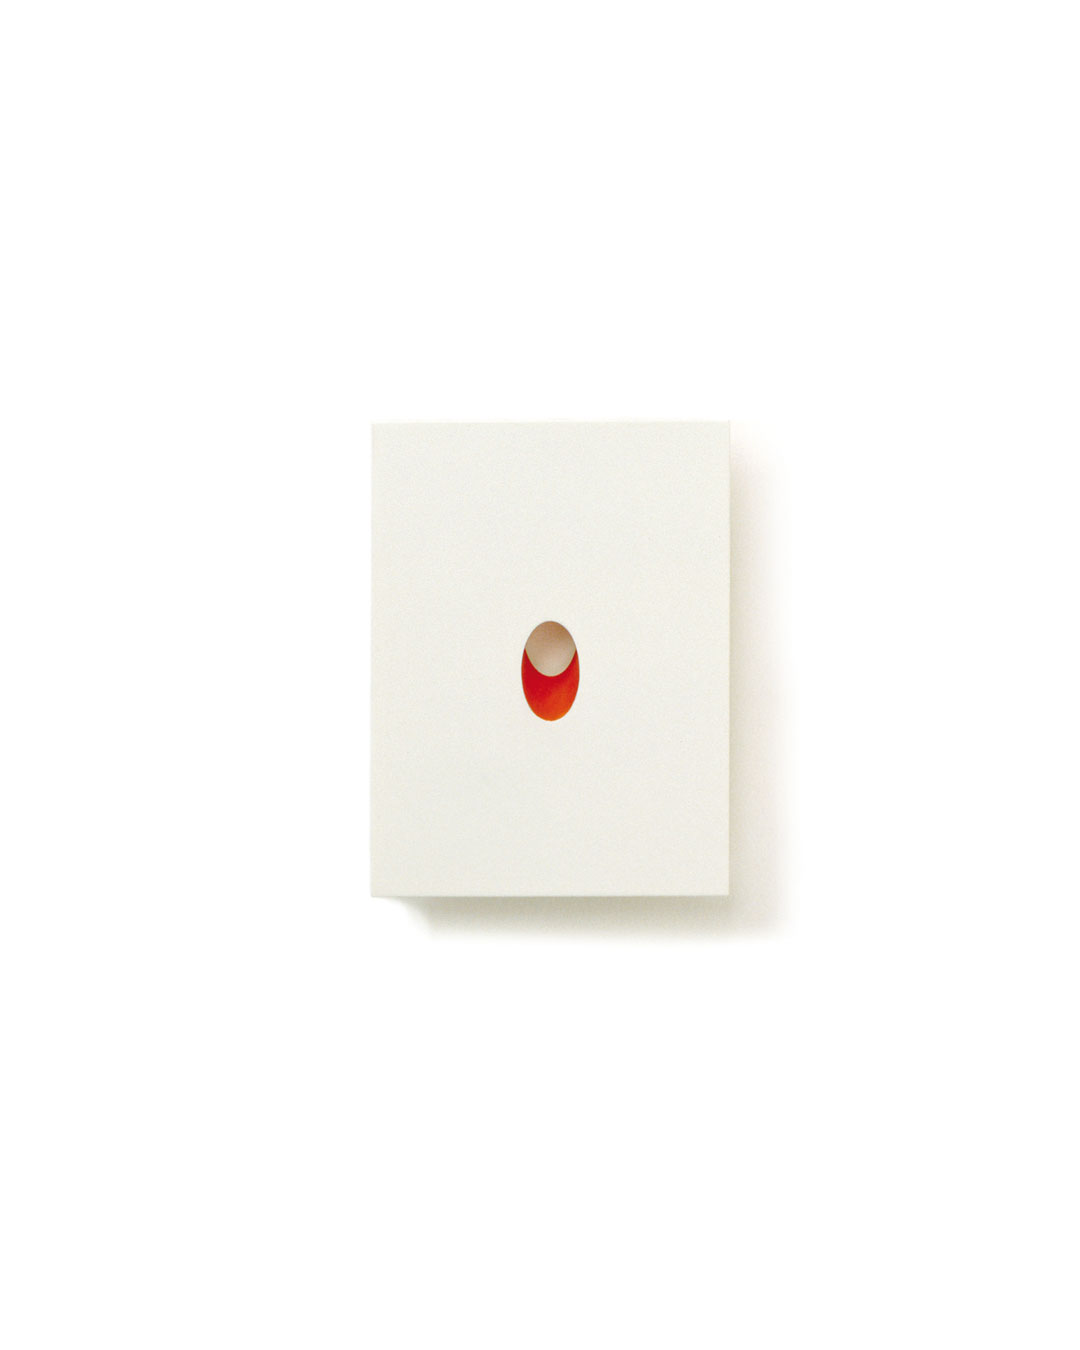 Otto Künzli, Rotes Loch (Red Hole), 2006, brooch; silver, acrylic paint, stainless steel, 60 x 45 x 5 mm (edition 3), €5100